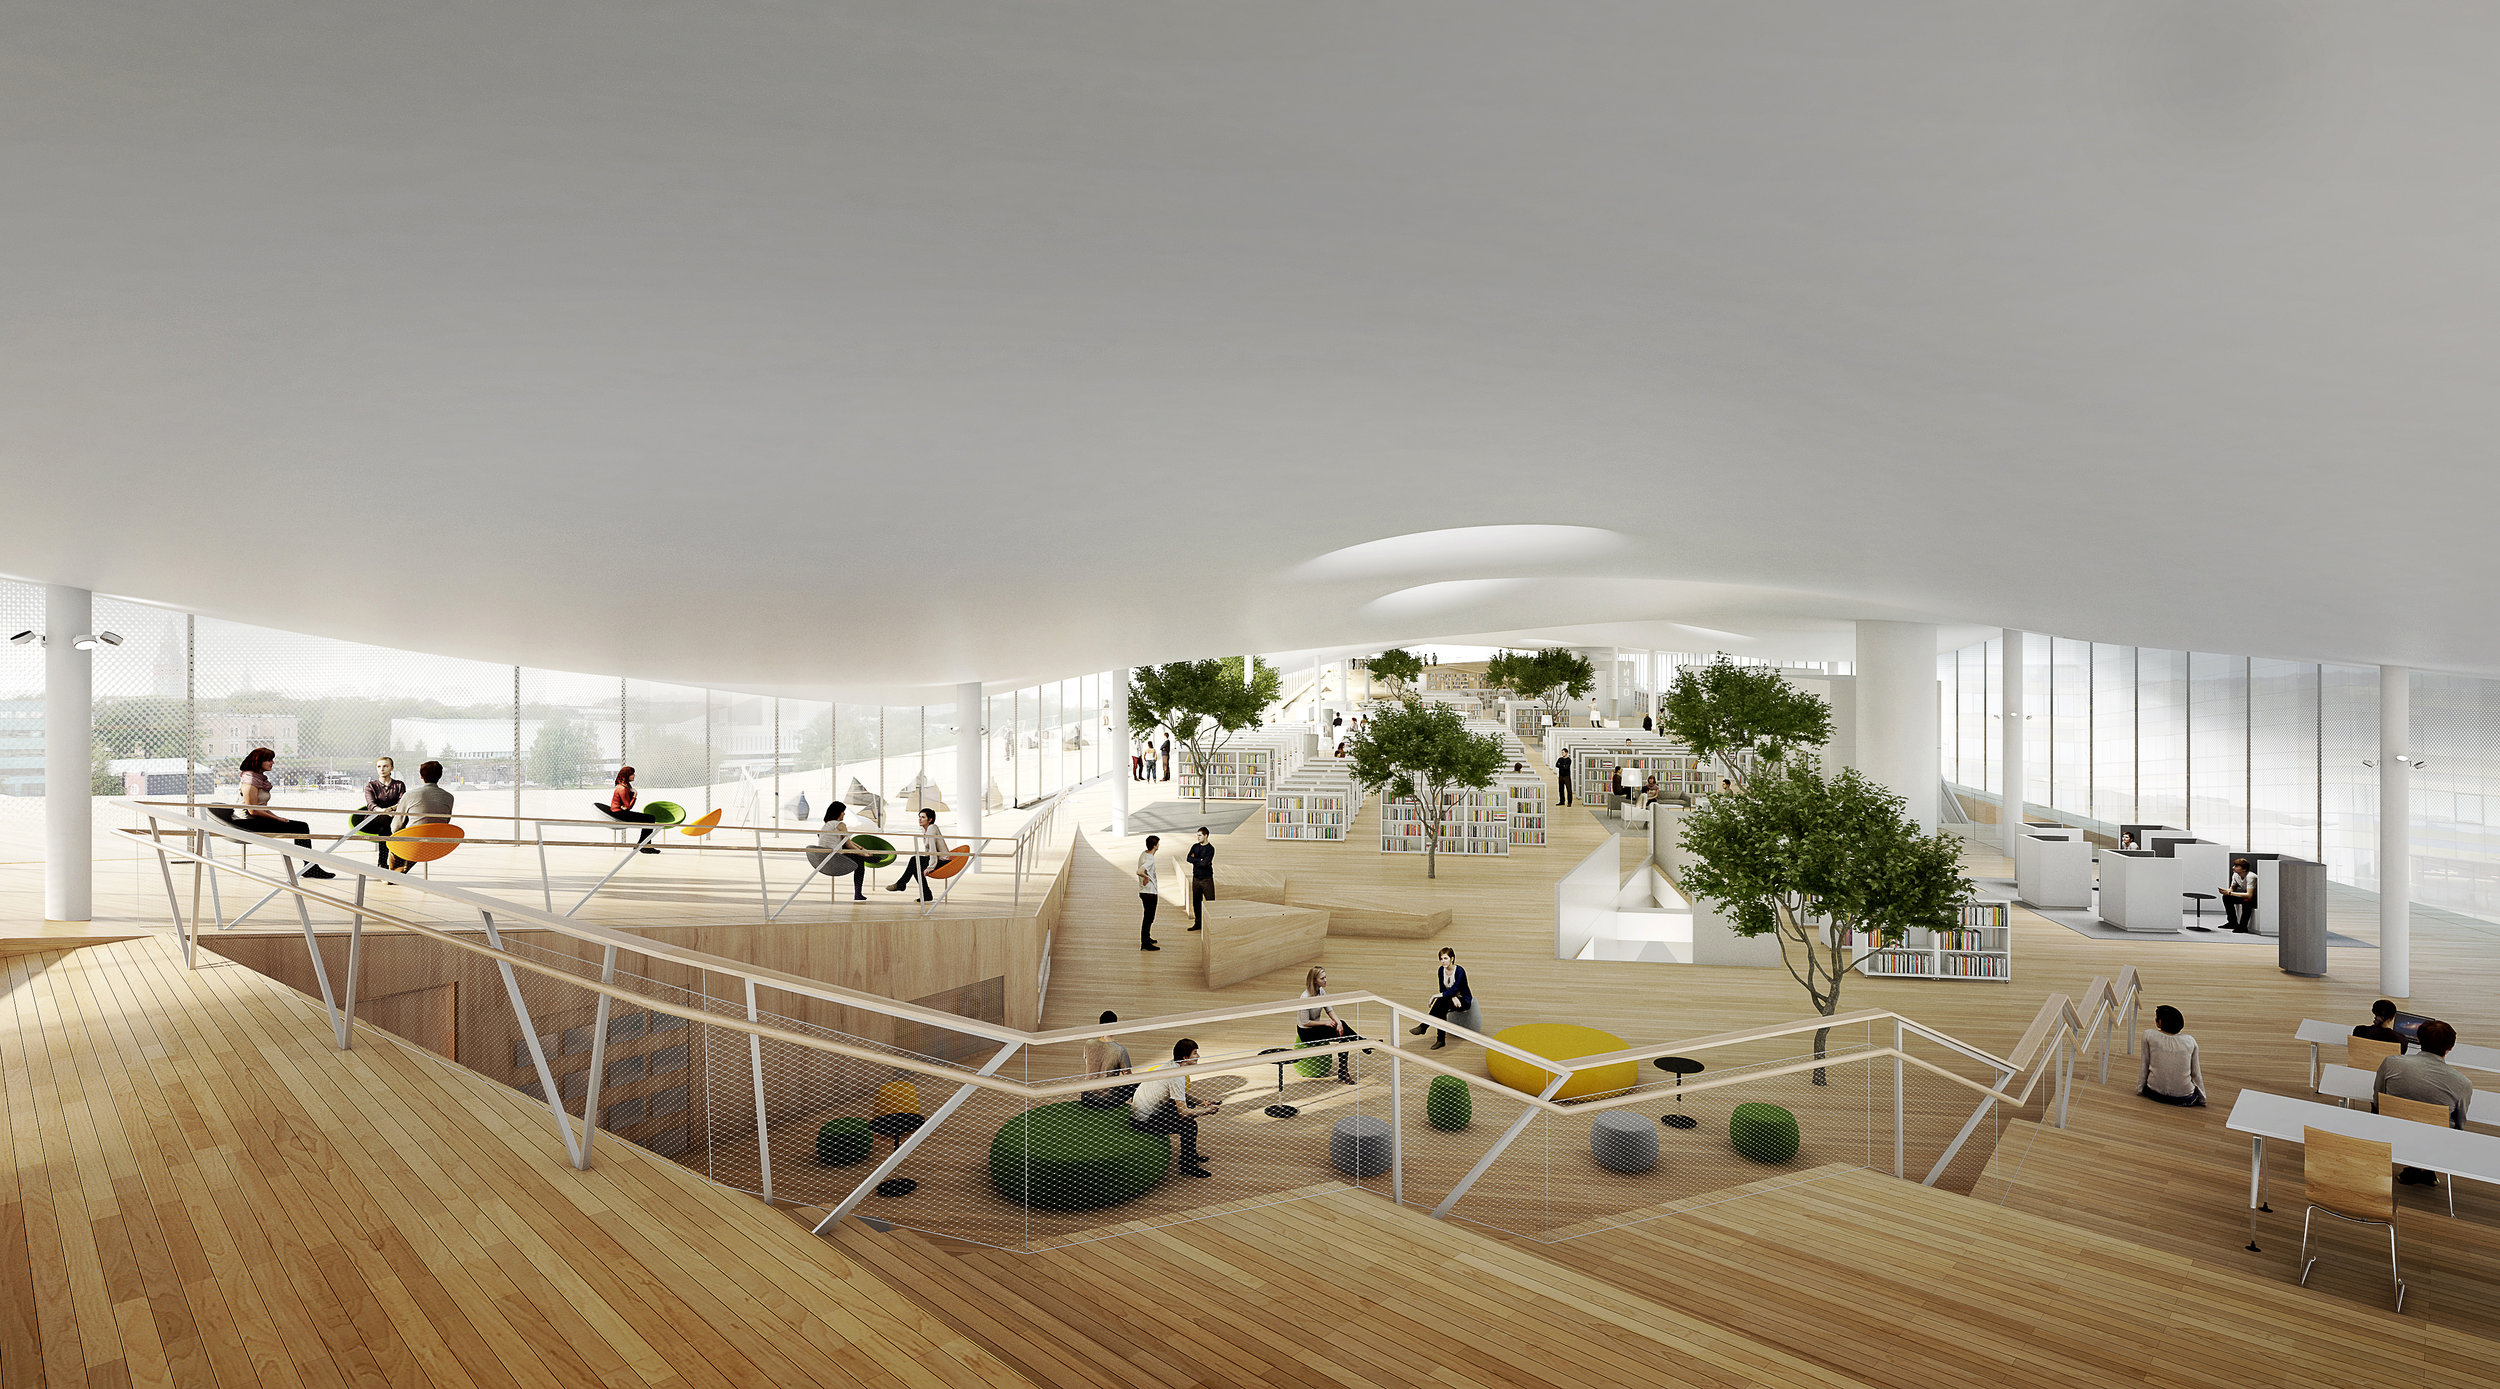 Helsinki Central Library by ALA - 2nd floor from south 2016.jpg